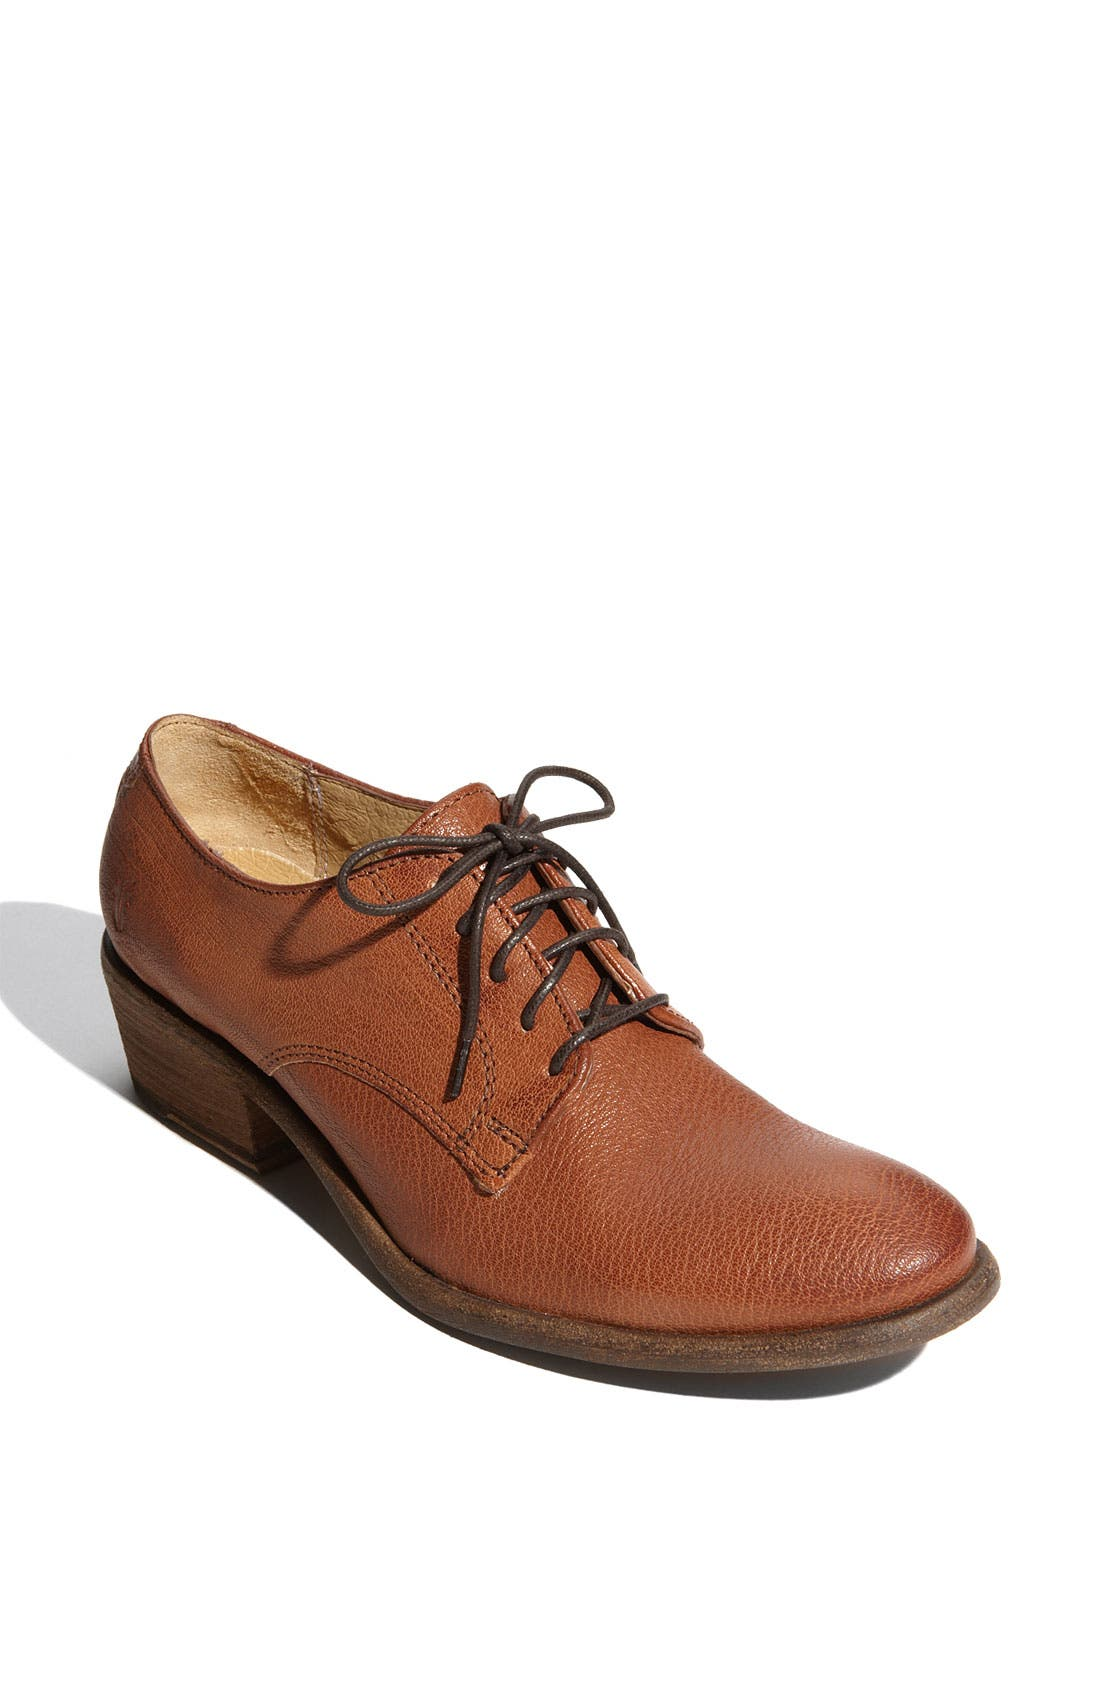 Alternate Image 1 Selected - Frye 'Carson' Oxford